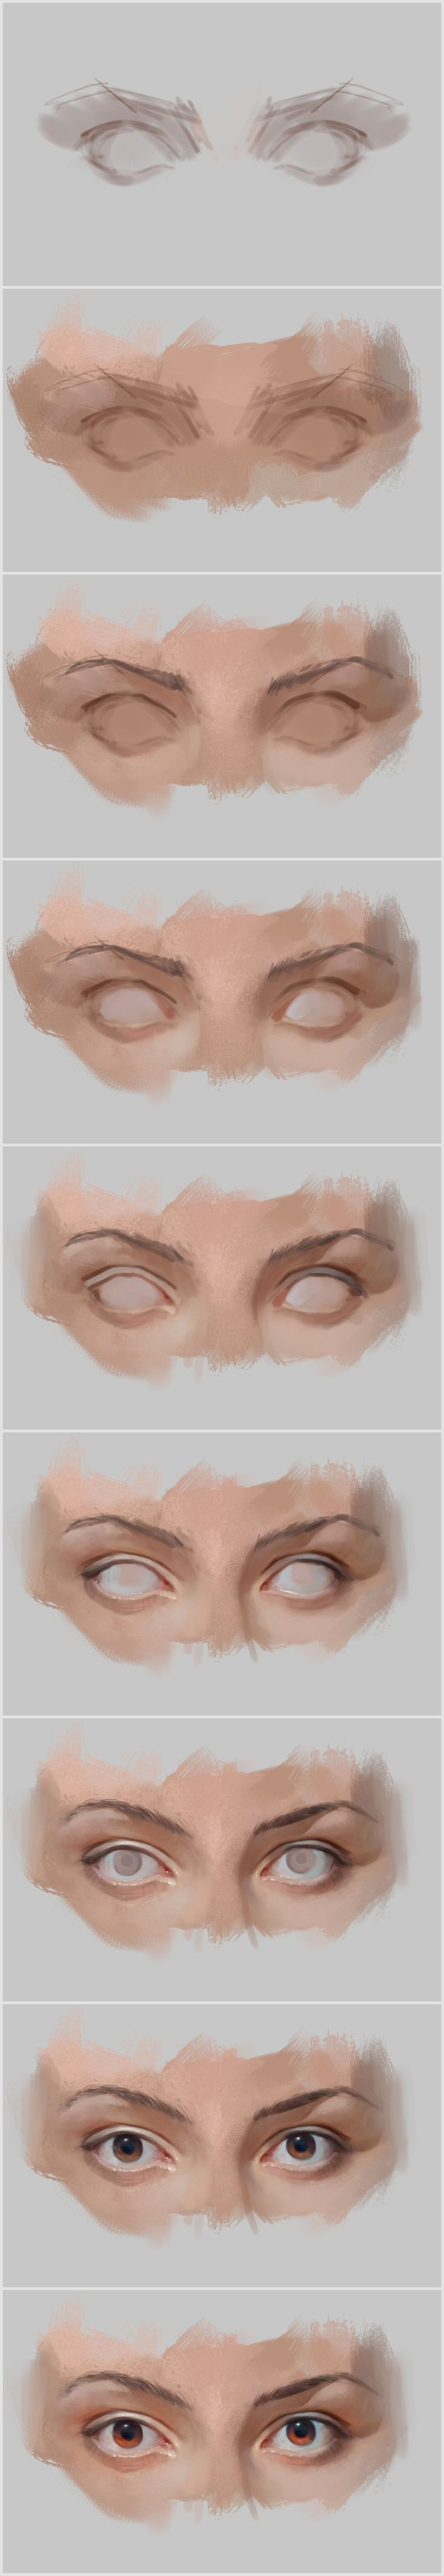 How to paint eyes in Photoshop step by step